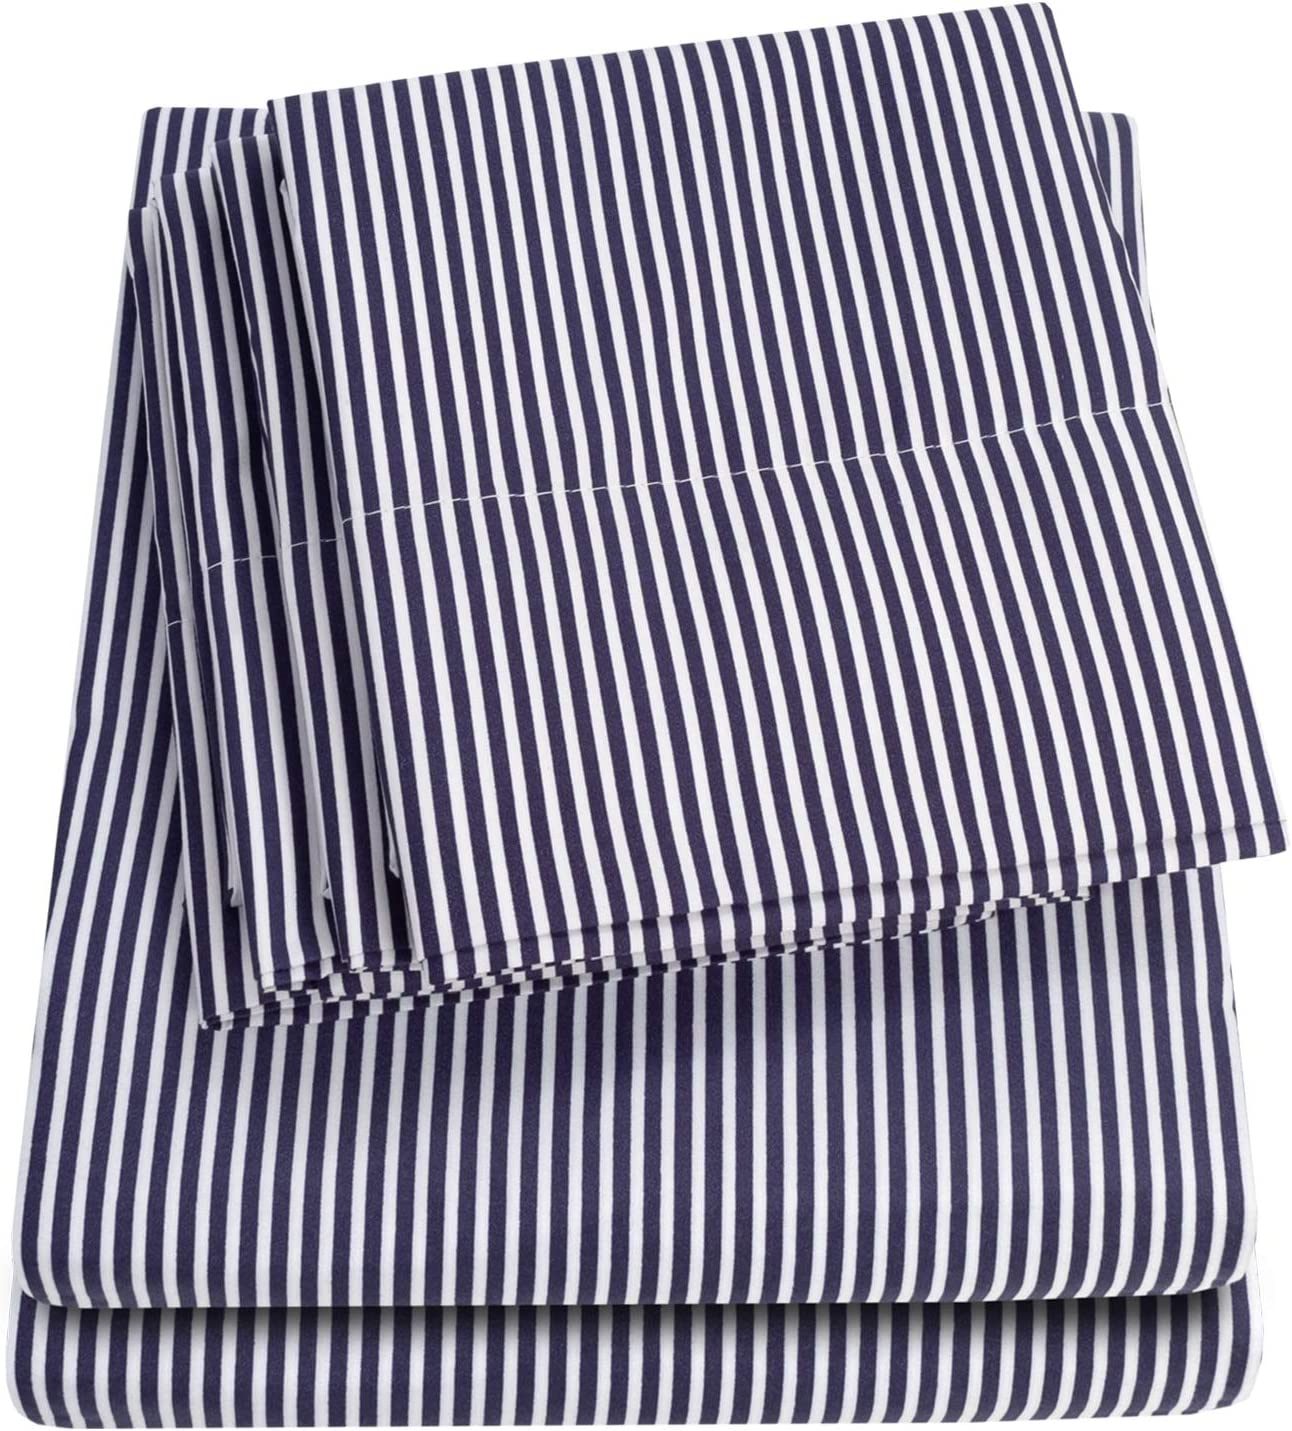 Full Size Bed Sheets - 6 Piece 1500 Thread Count Fine Brushed Microfiber Deep Pocket Full Sheet Set Bedding - 2 Extra Pillow Cases, Great Value, Full, Classic Stripe Navy